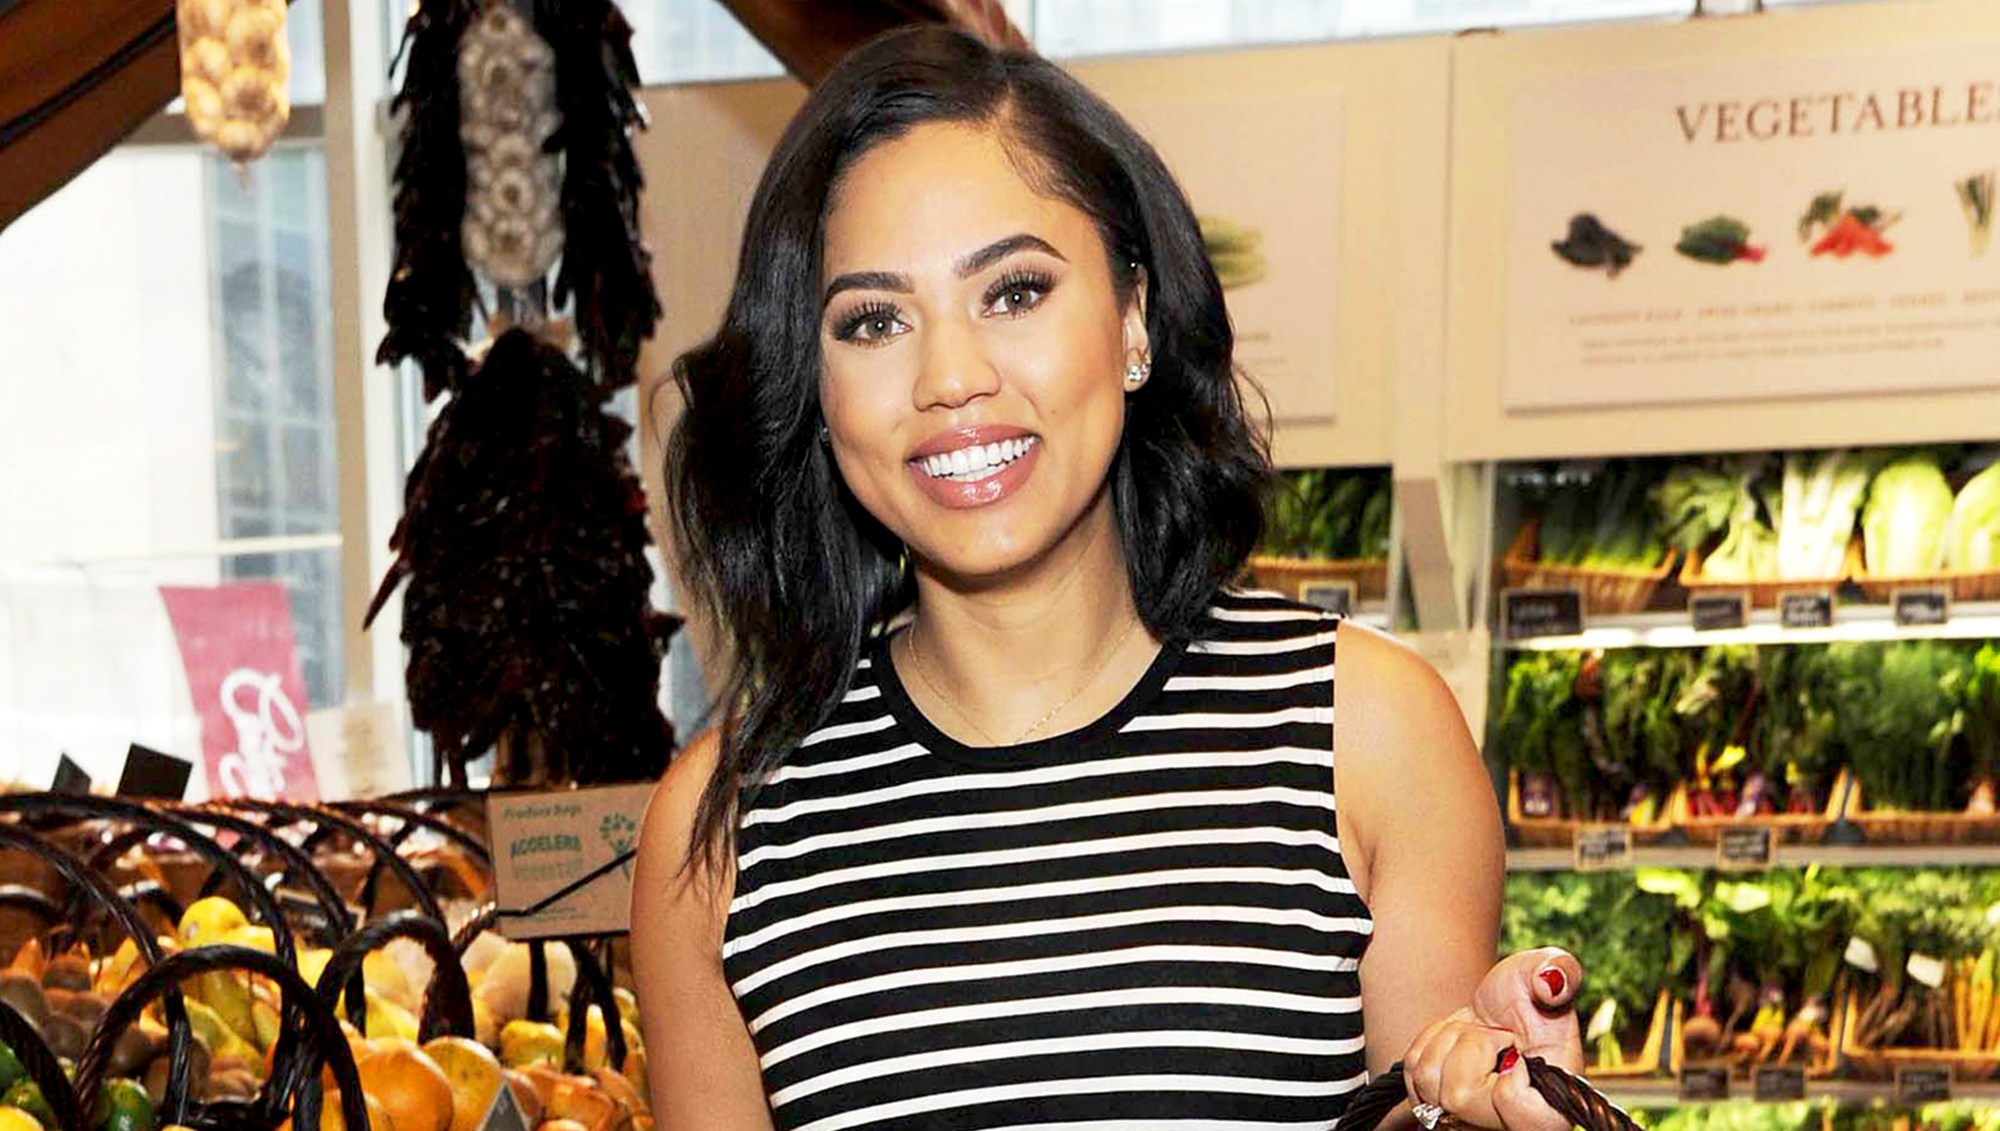 Chef and author Ayesha Curry shops in New York City on April 27, 2017.